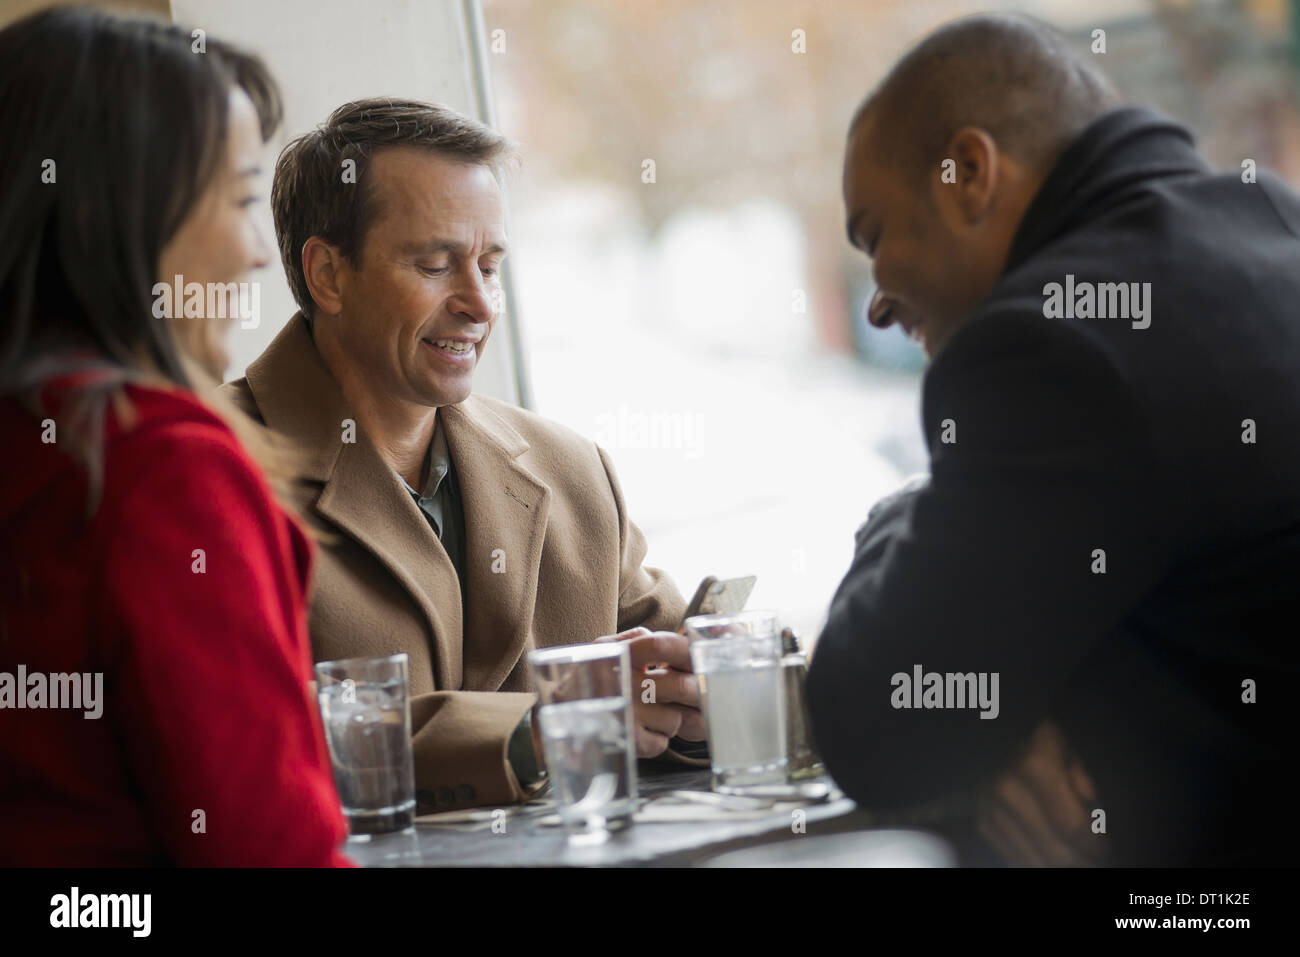 A group of people on the go using mobile phones and talking to each other In a coffee shop Stock Photo